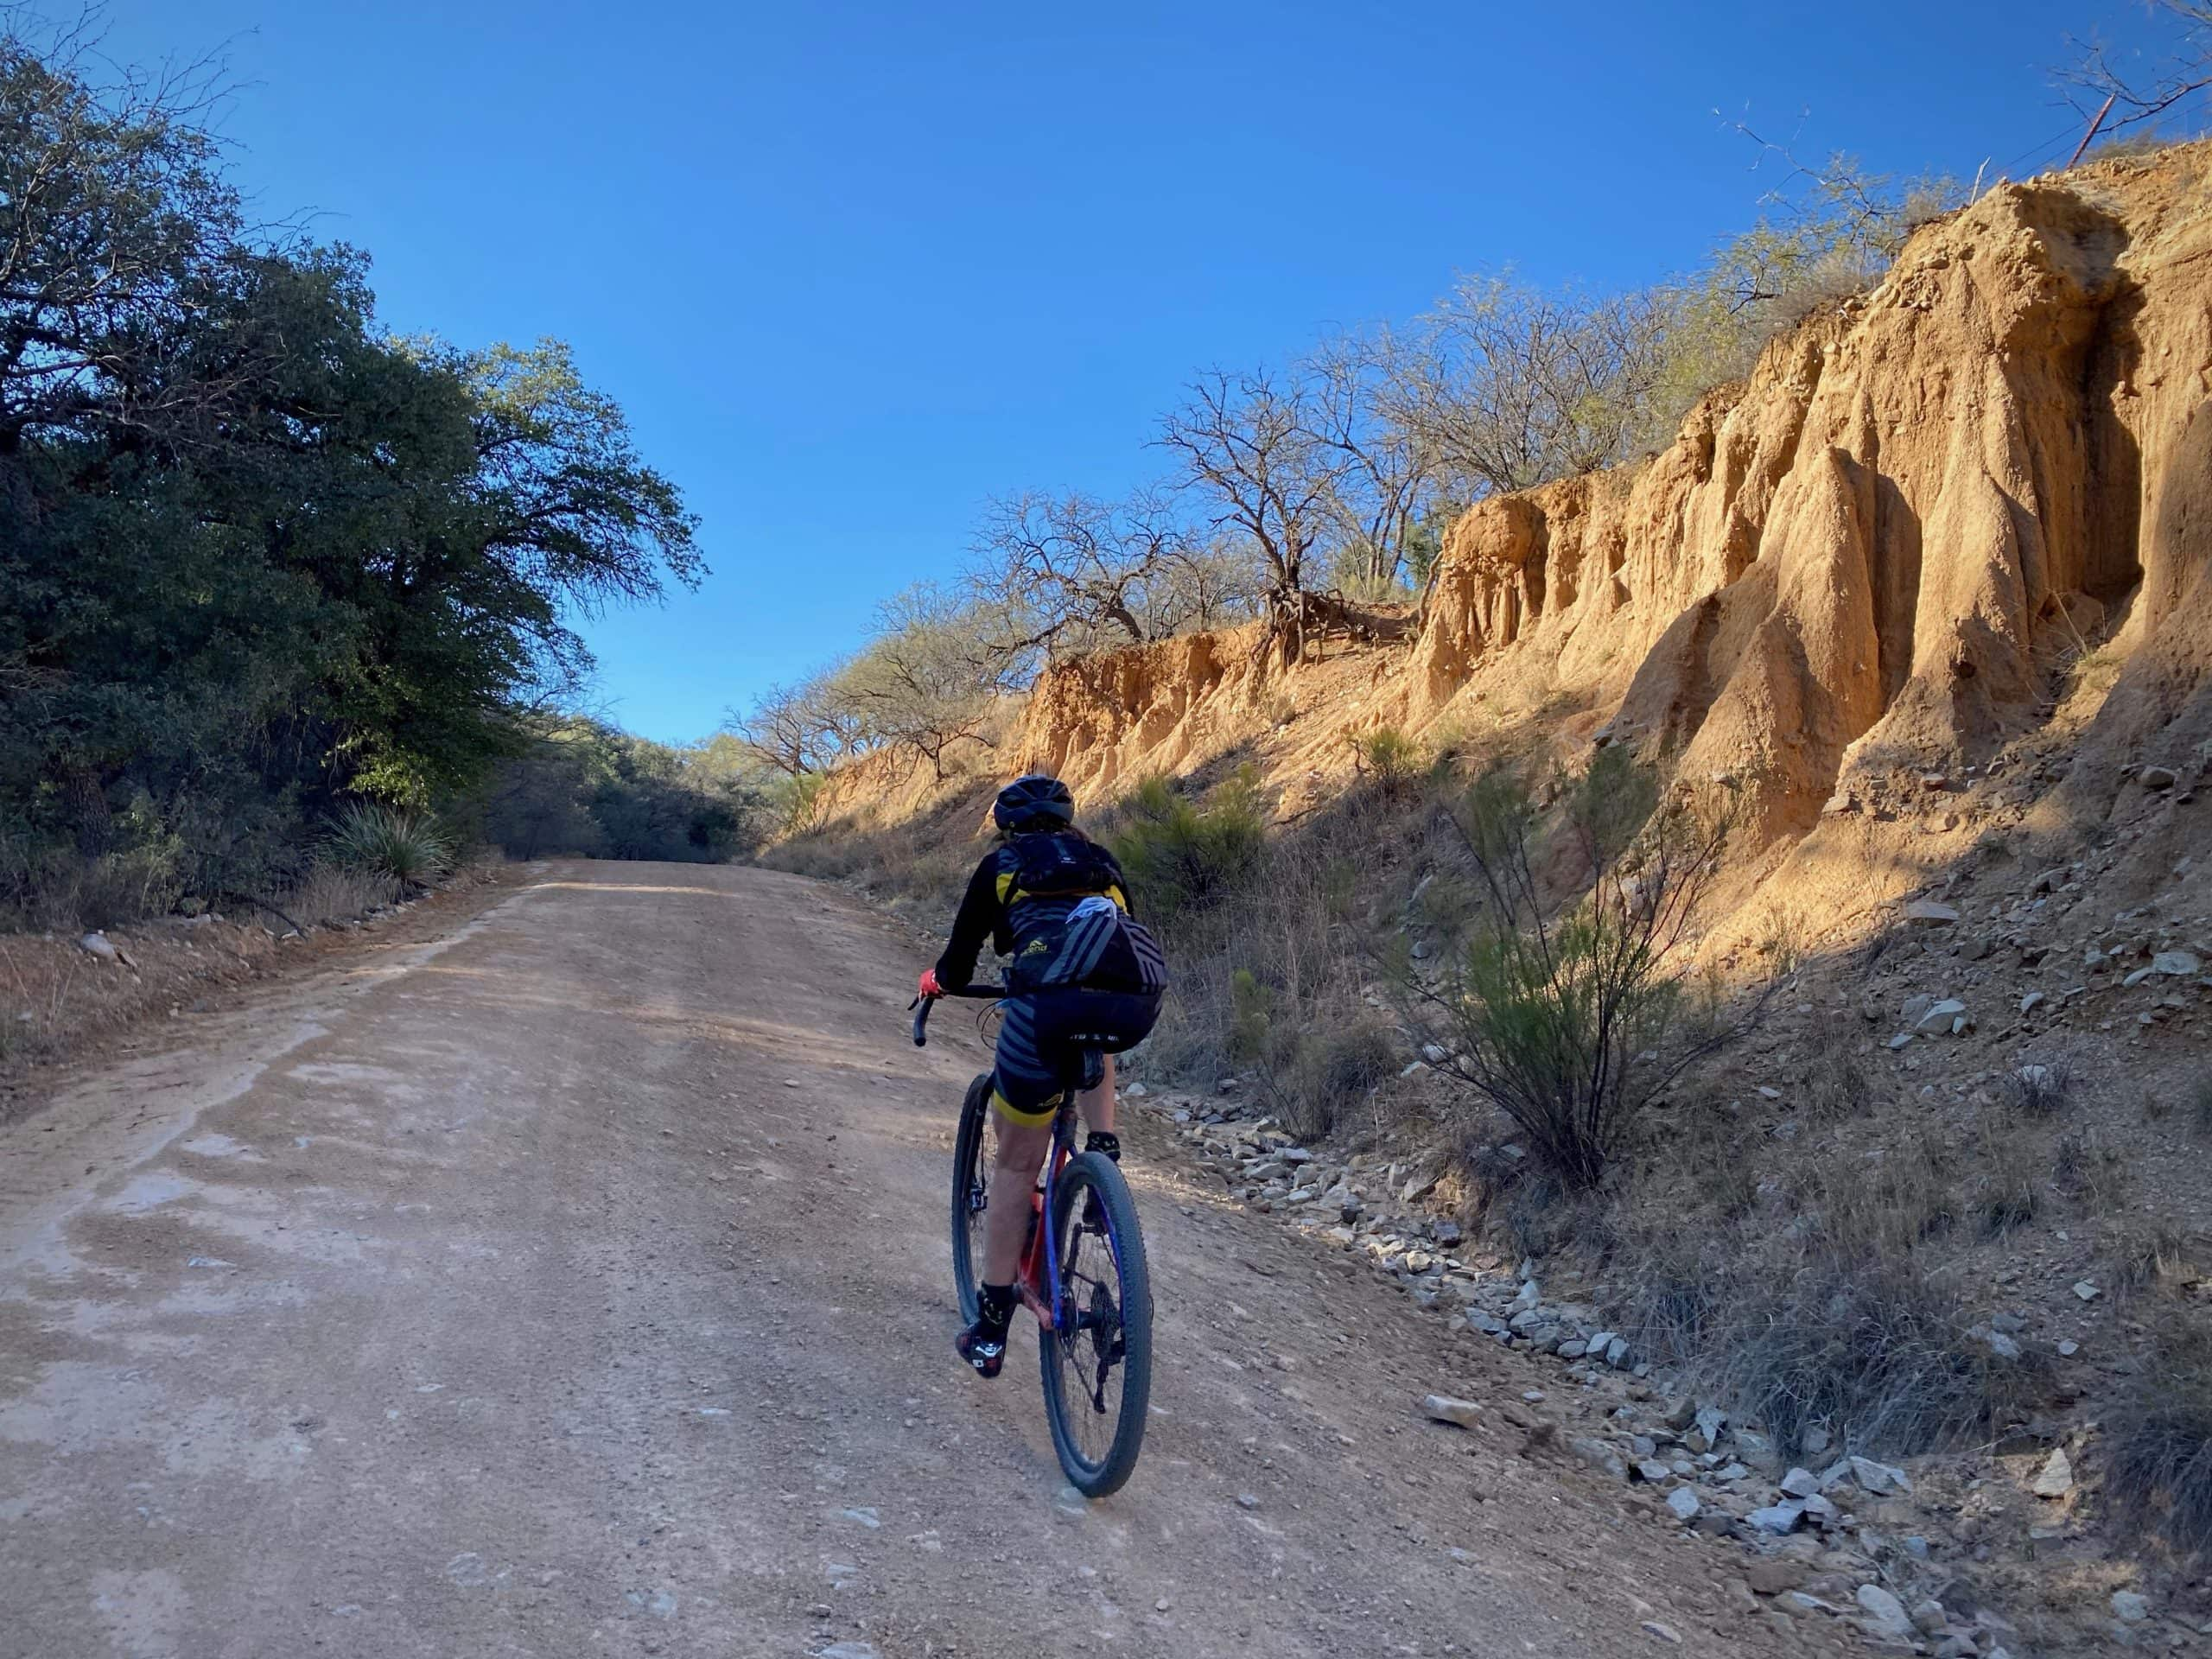 Woman gravel cyclist on gravel road in Oro Blanco wash in the Coronado National Forest.